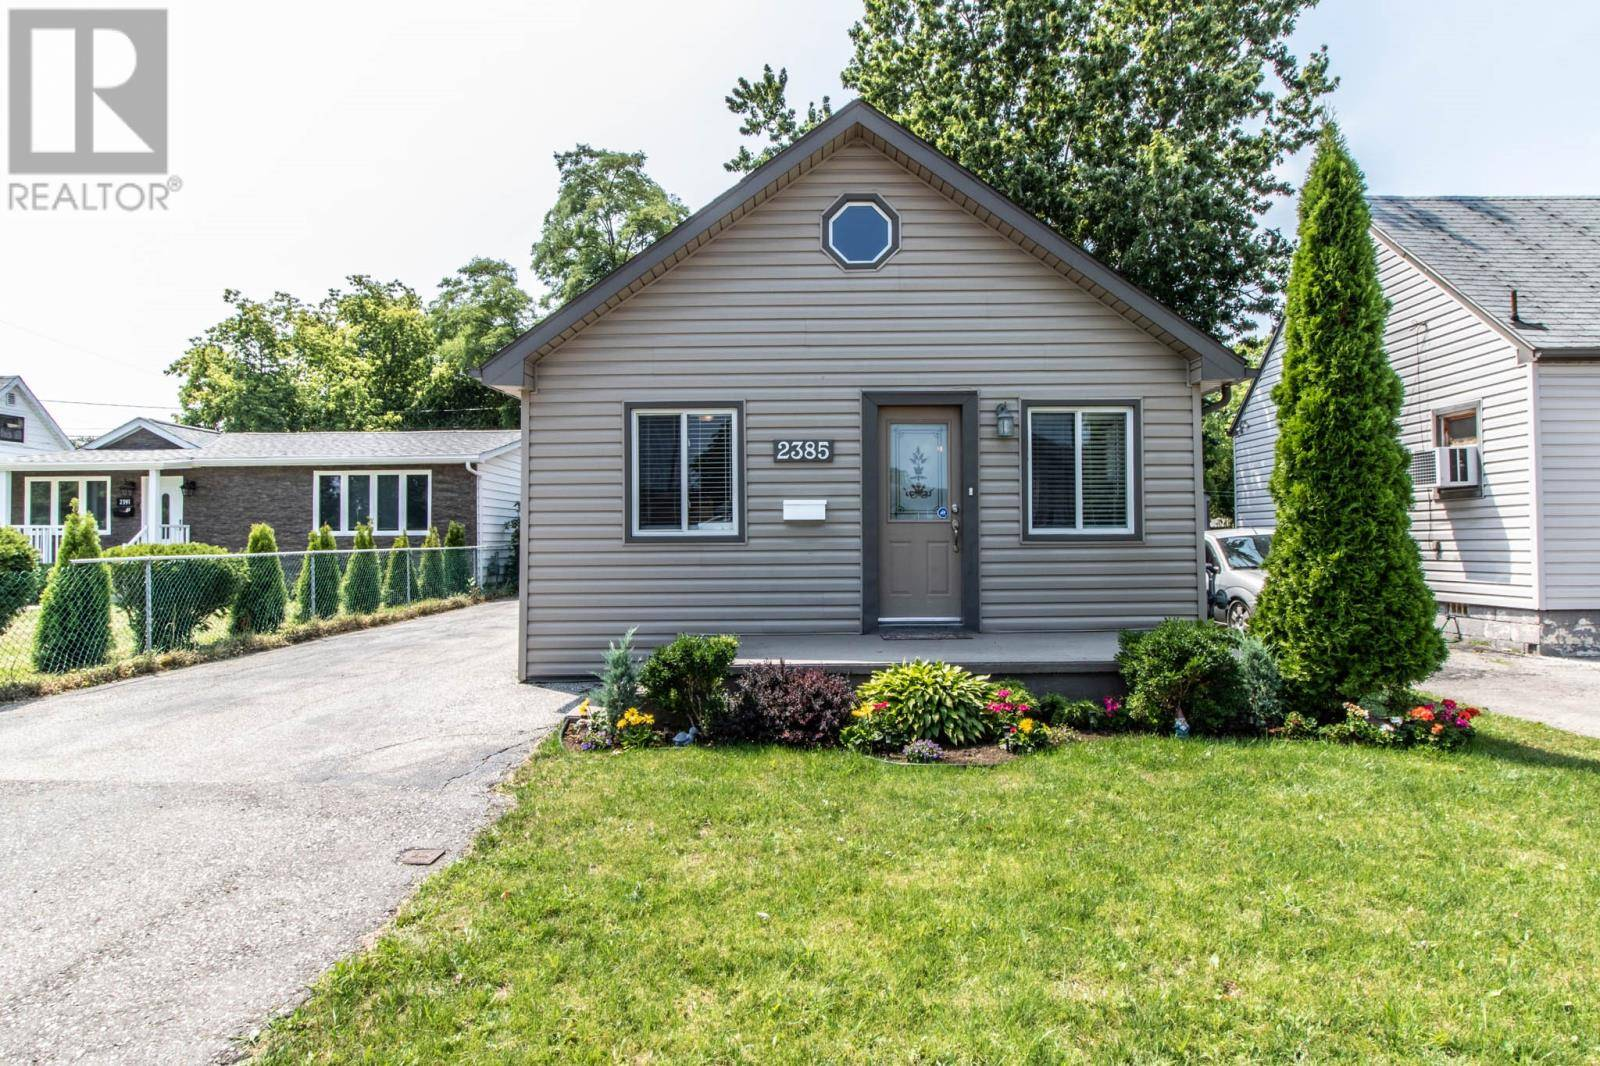 House for sale at 2385 Meldrum  Windsor Ontario - MLS: 19023606